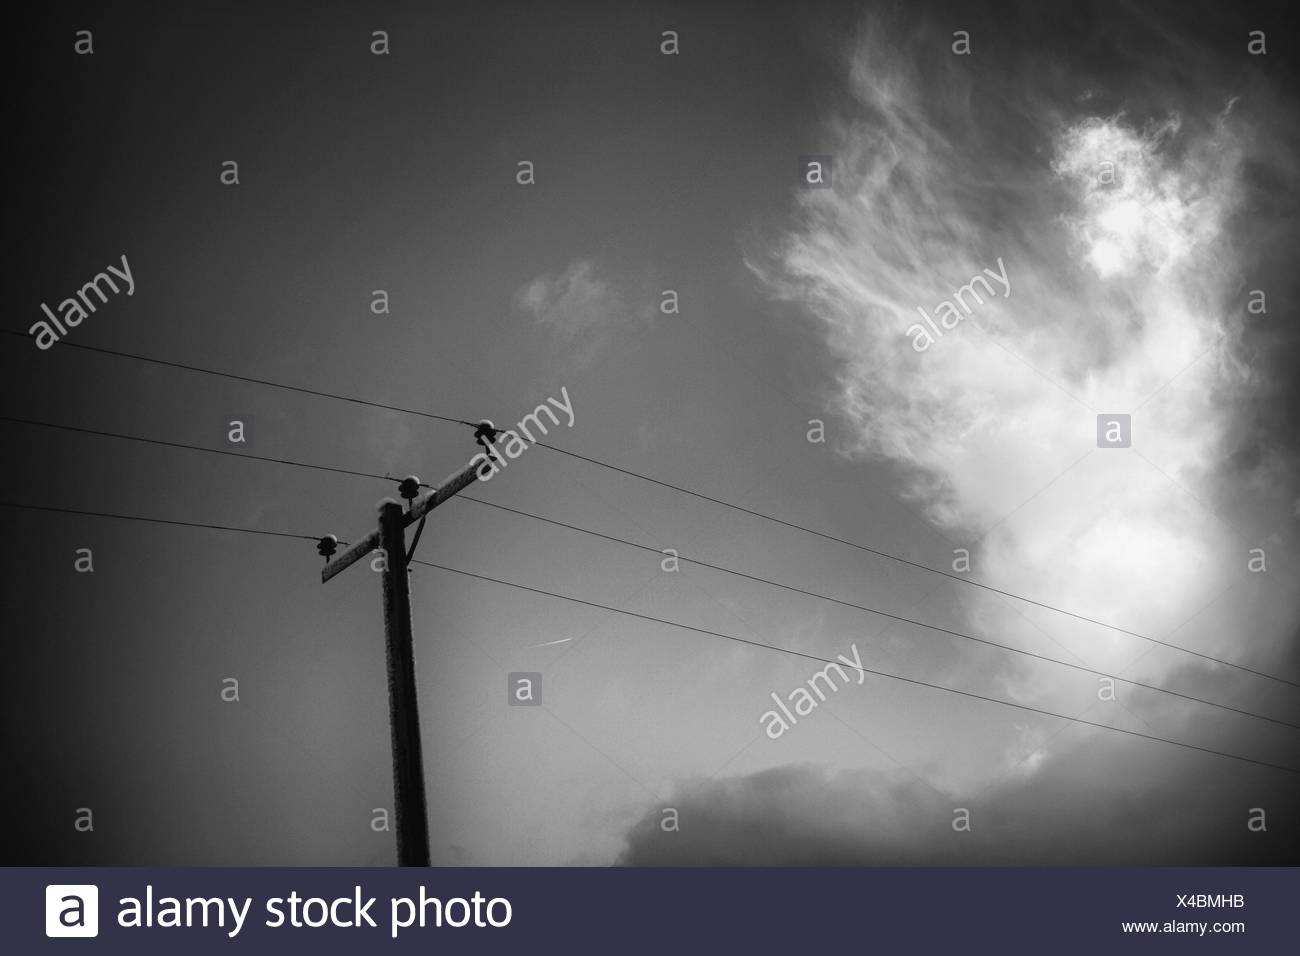 Black And White View Of An Electrical Pole With Wires Clouds In Wiring A Light Fixture Wire The Sky Yorkshire Dales Uk England Europe